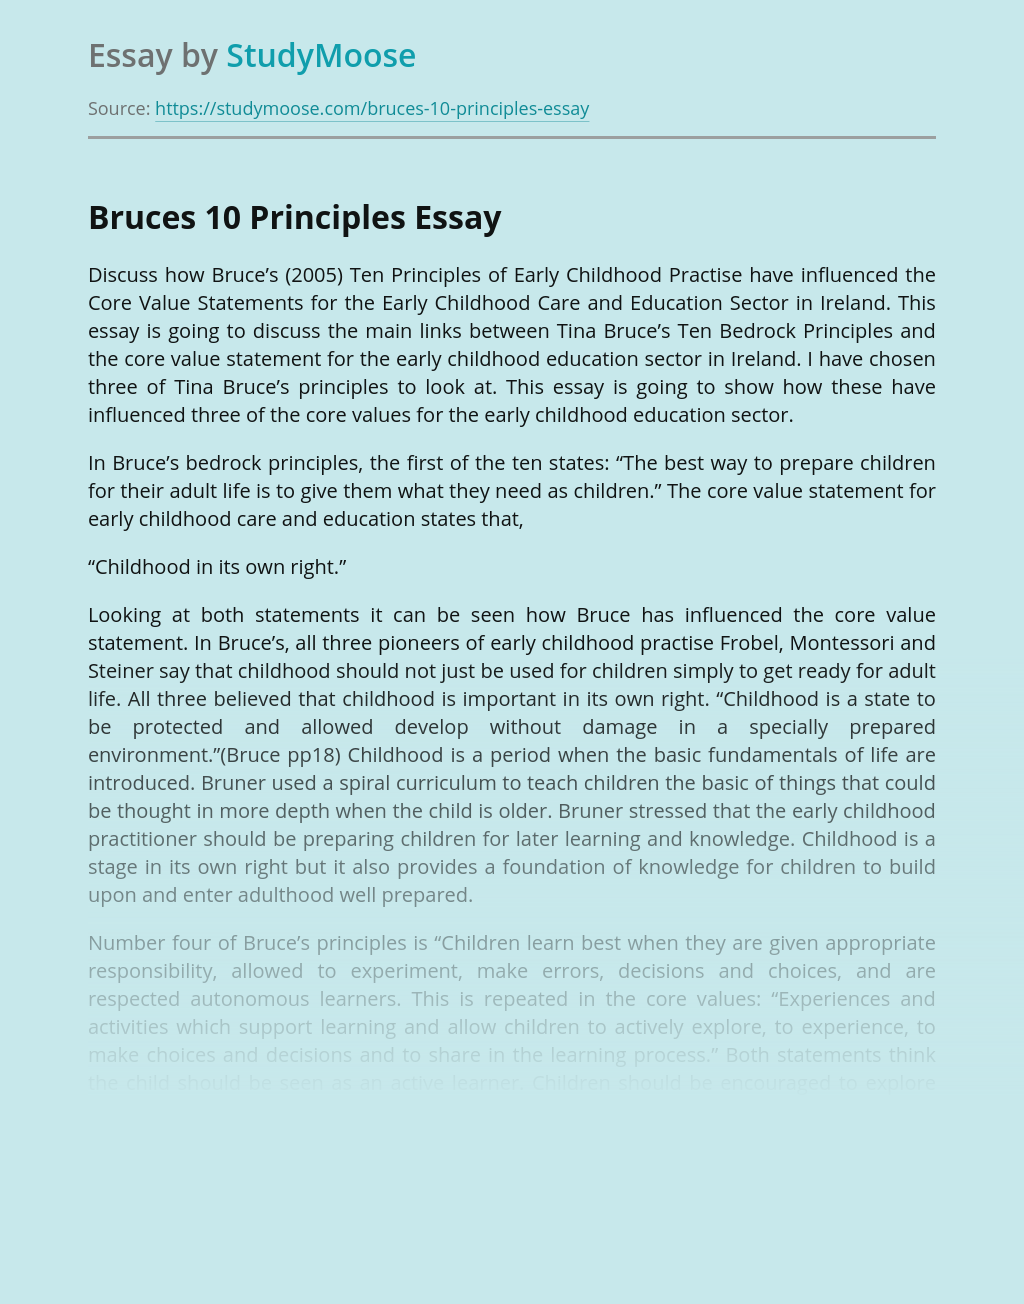 Tina Bruce's Ten Principles for Early Childhood Education